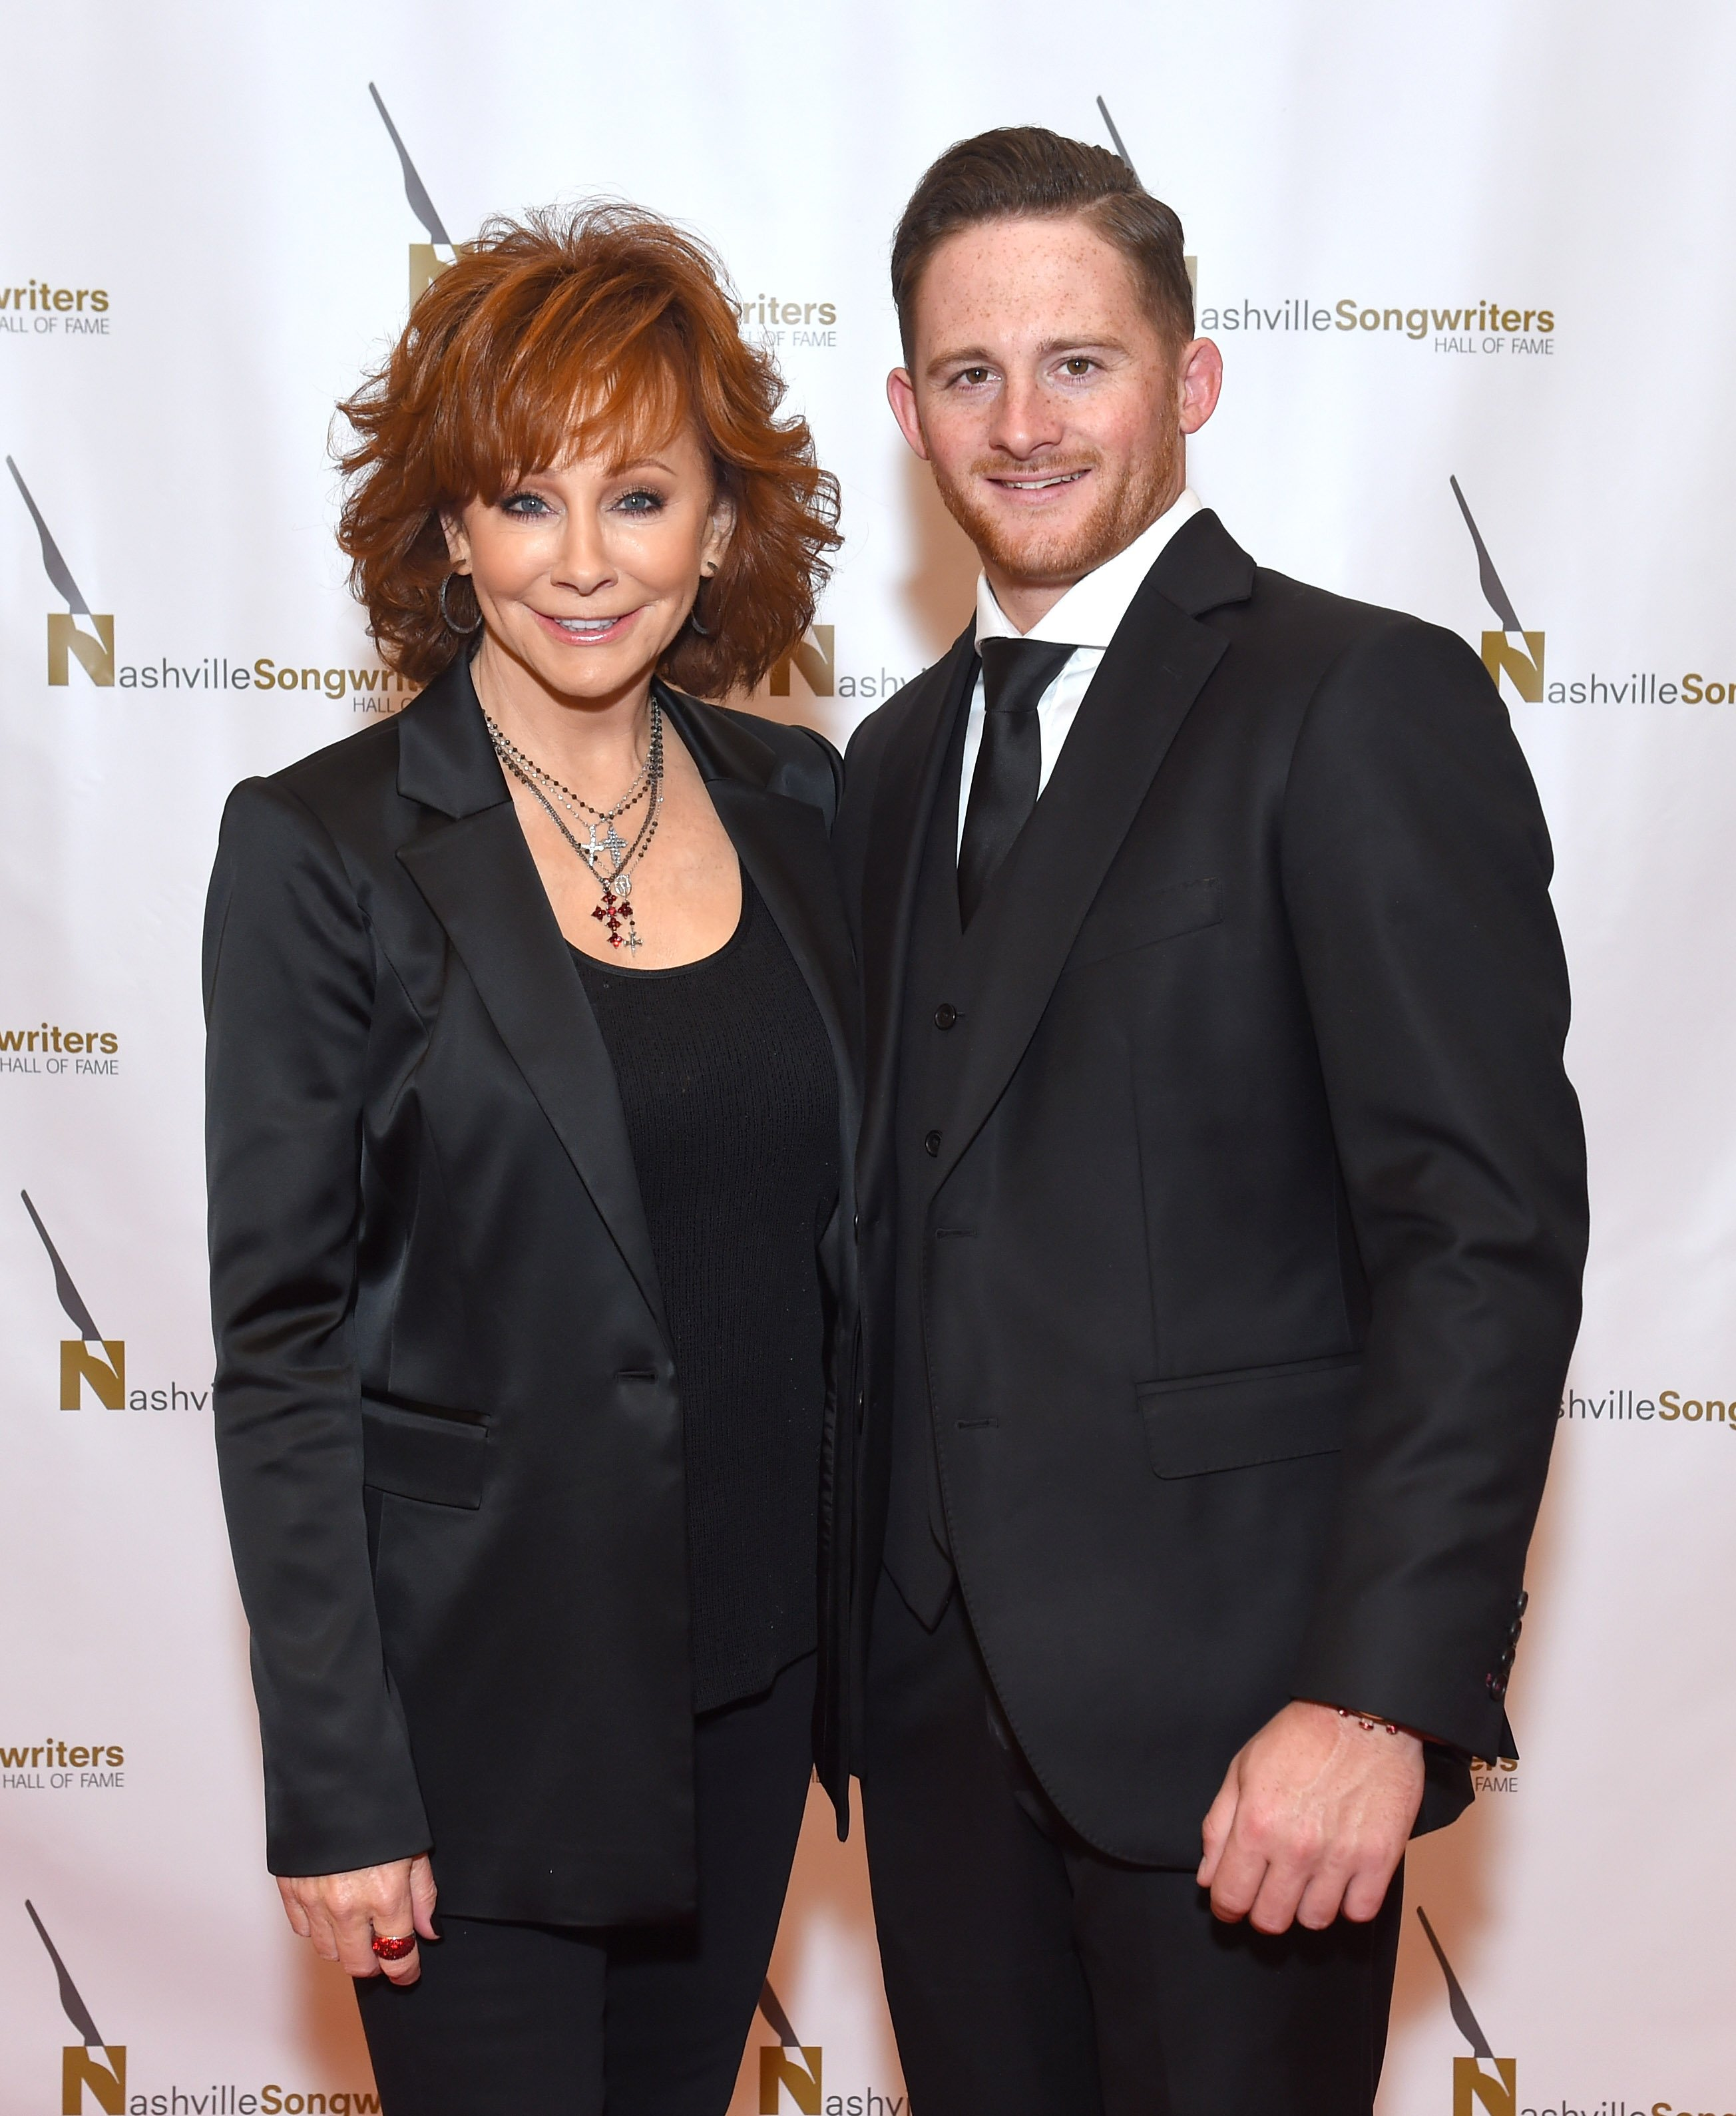 Reba McEntire and her son Shelby Blackstock attend the 2018 Nashville Songwriters Hall Of Fame Gala at Music City Center on October 28, 2018 | Photo: GettyImages